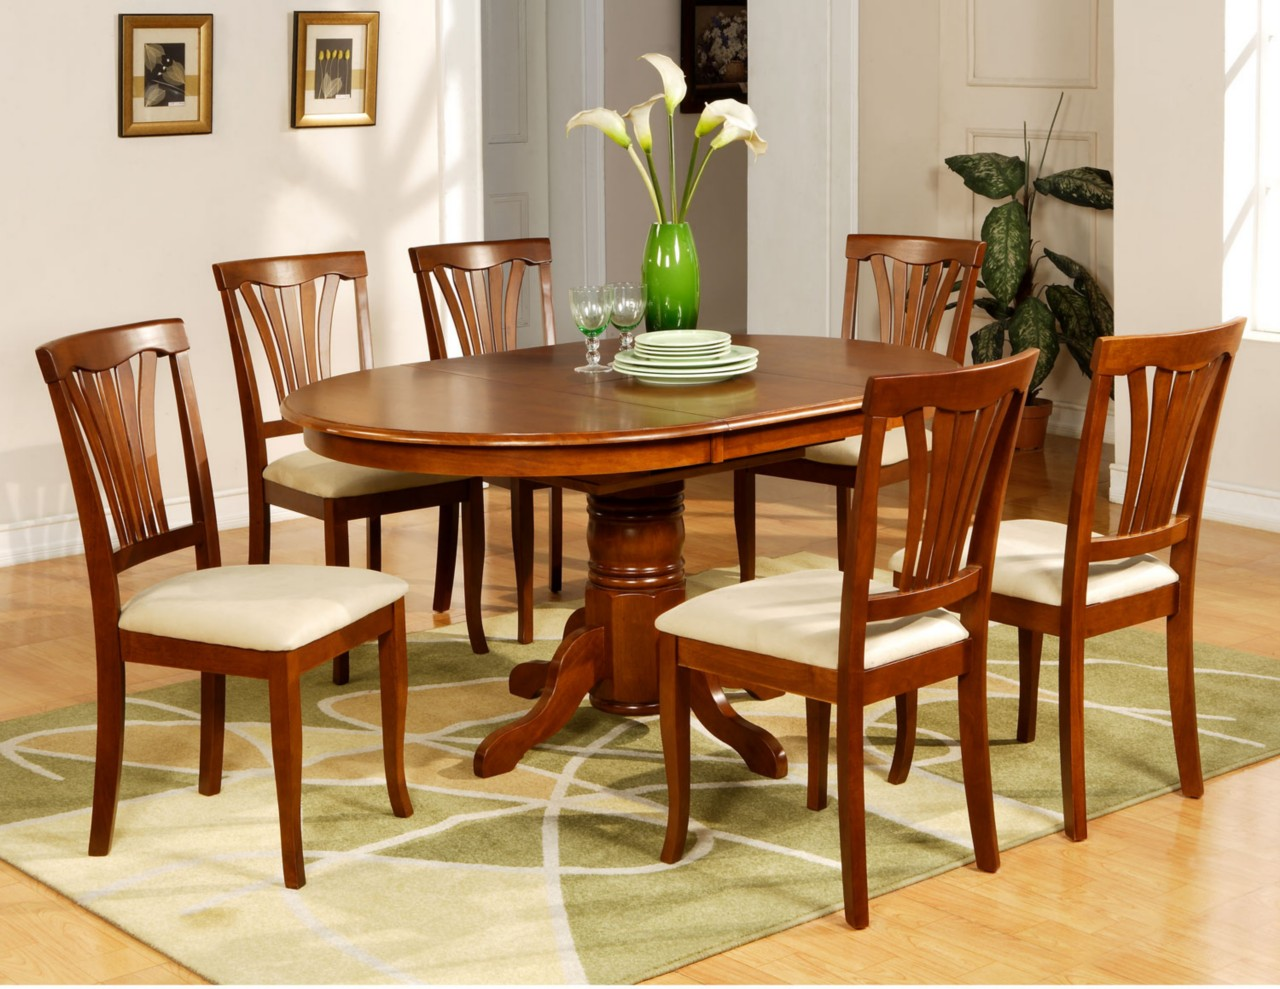 kitchen dinette sets photo - 2